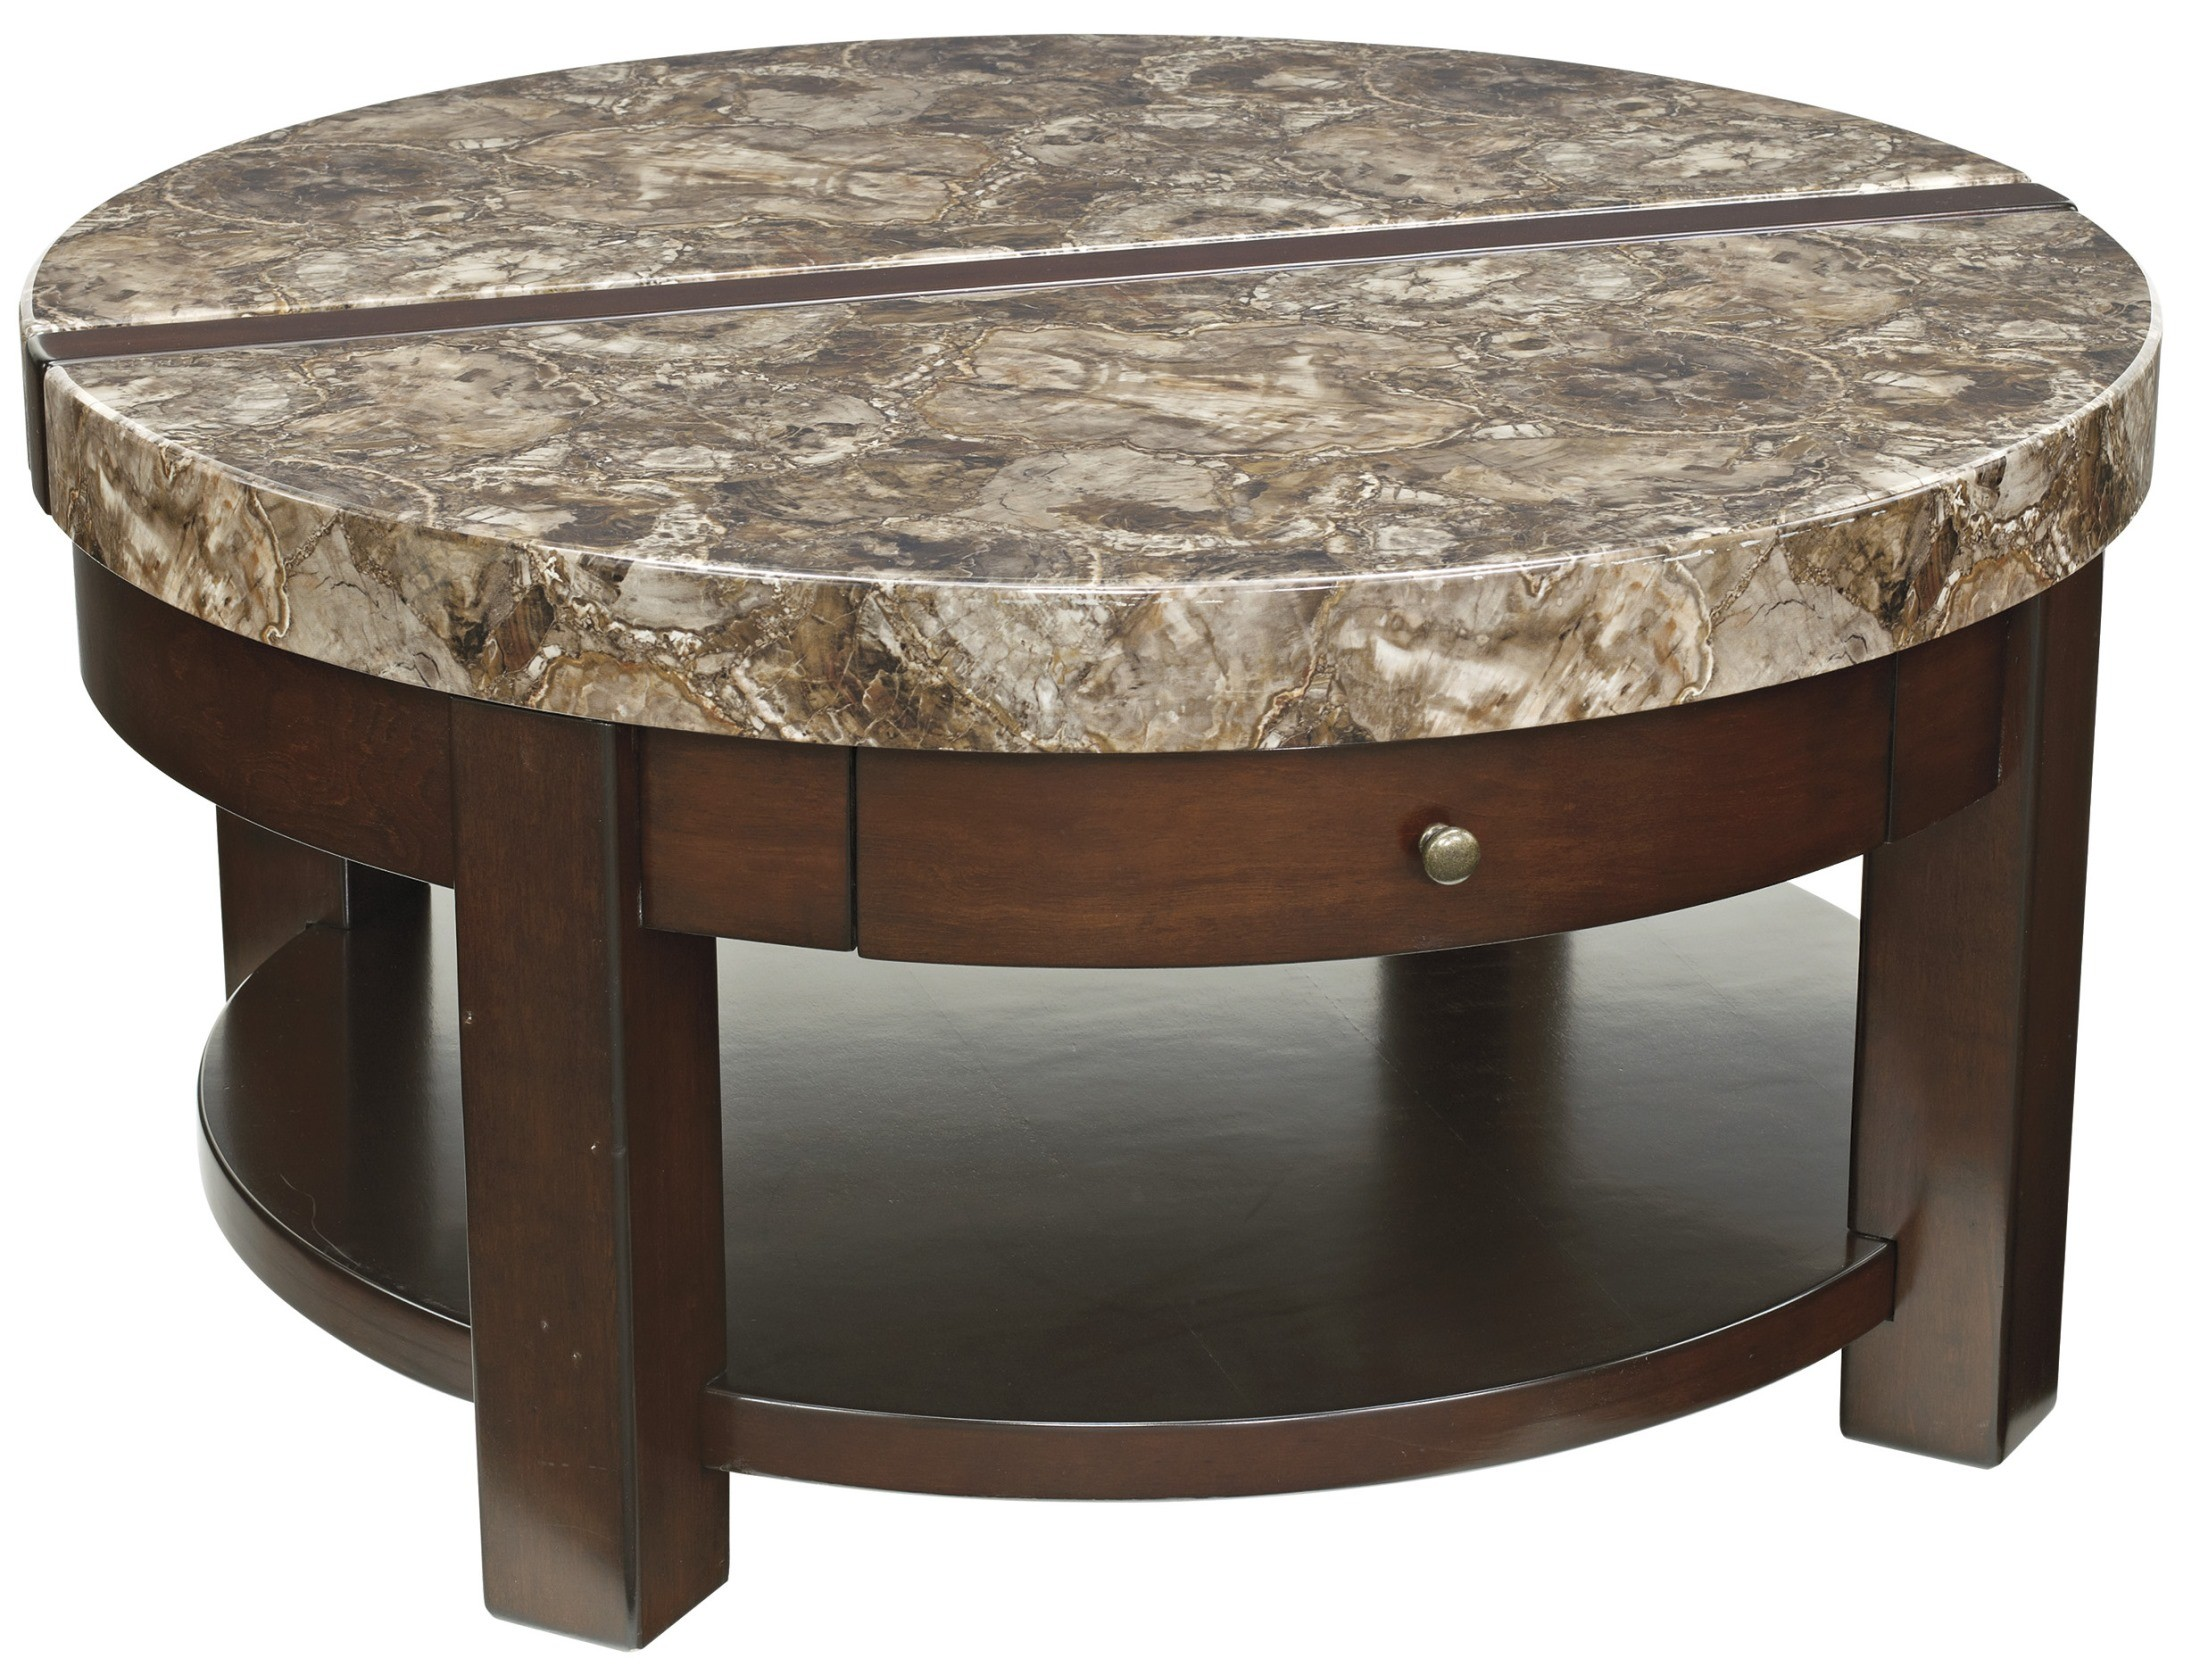 Kraleene Round Lift Top Cocktail Table from Ashley T687 8